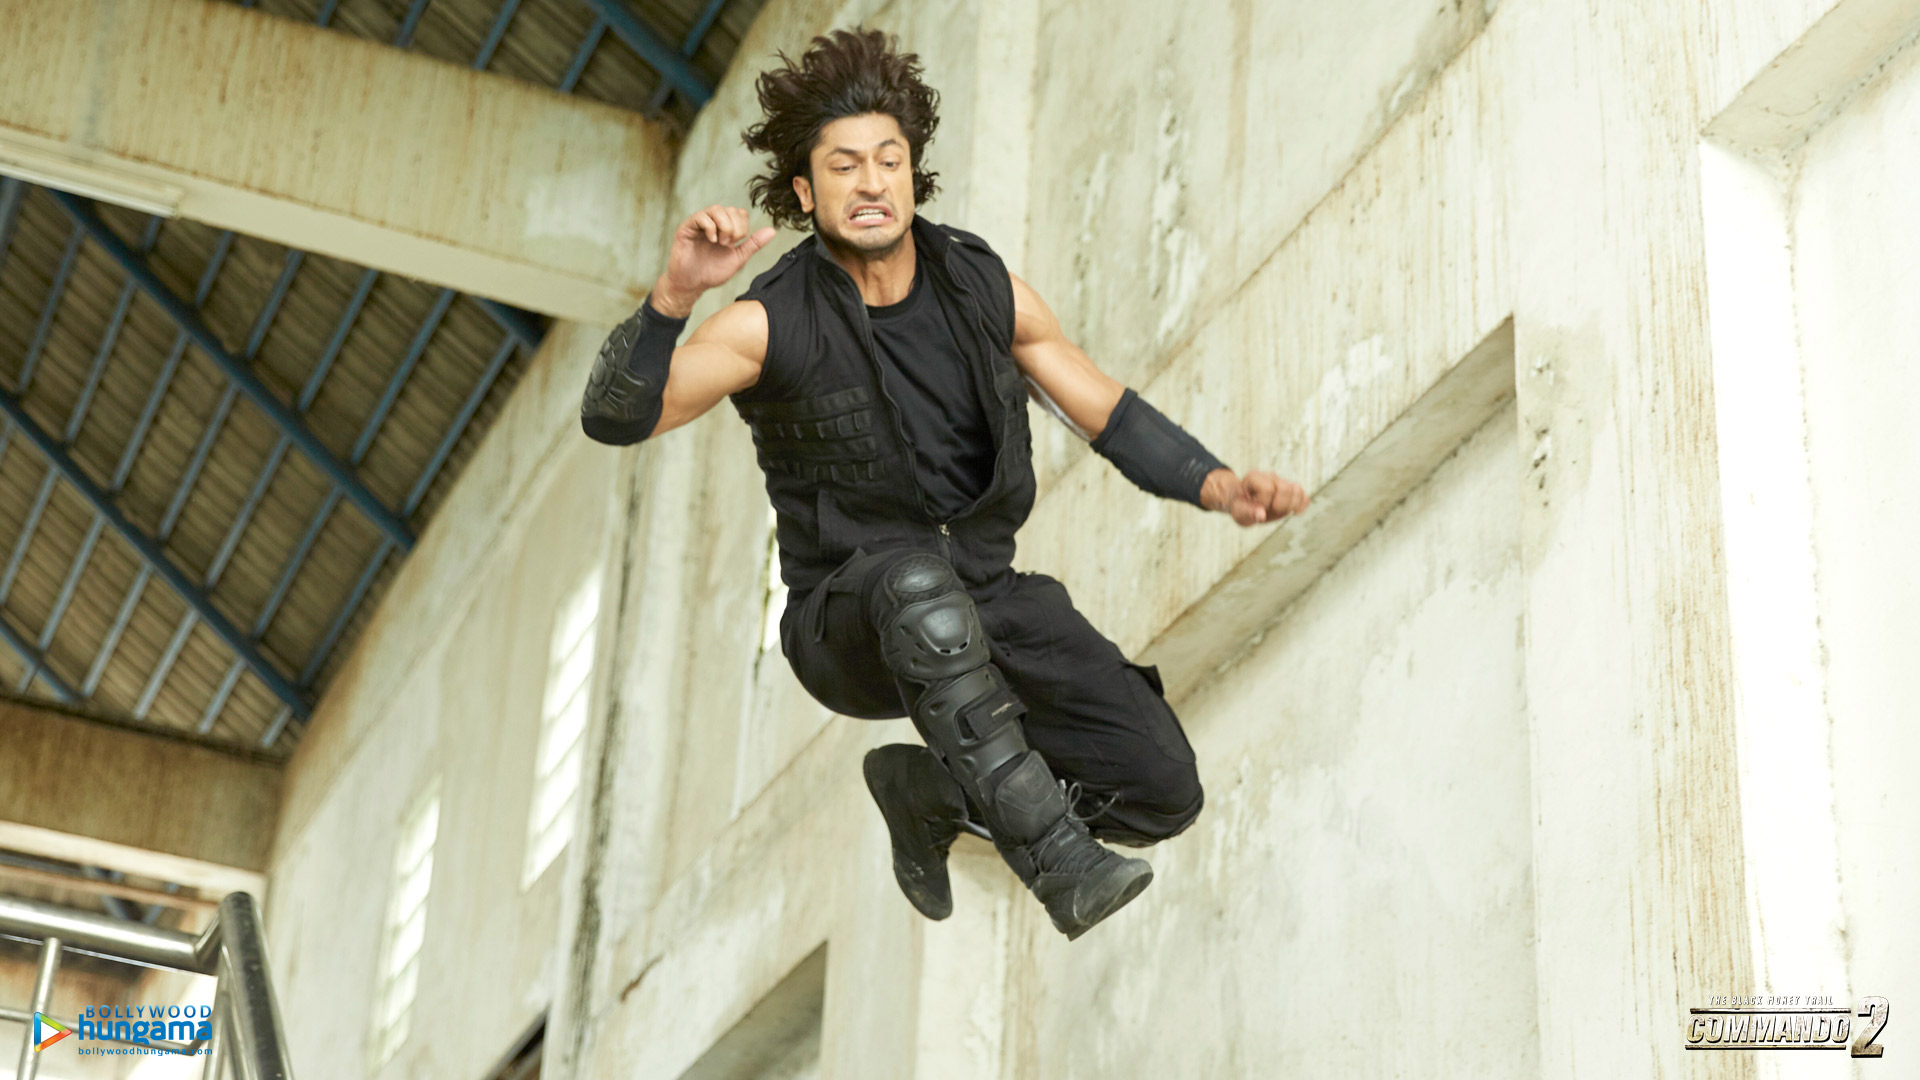 Commando 2 Wallpaper: Commando-2-1-5 - Bollywood